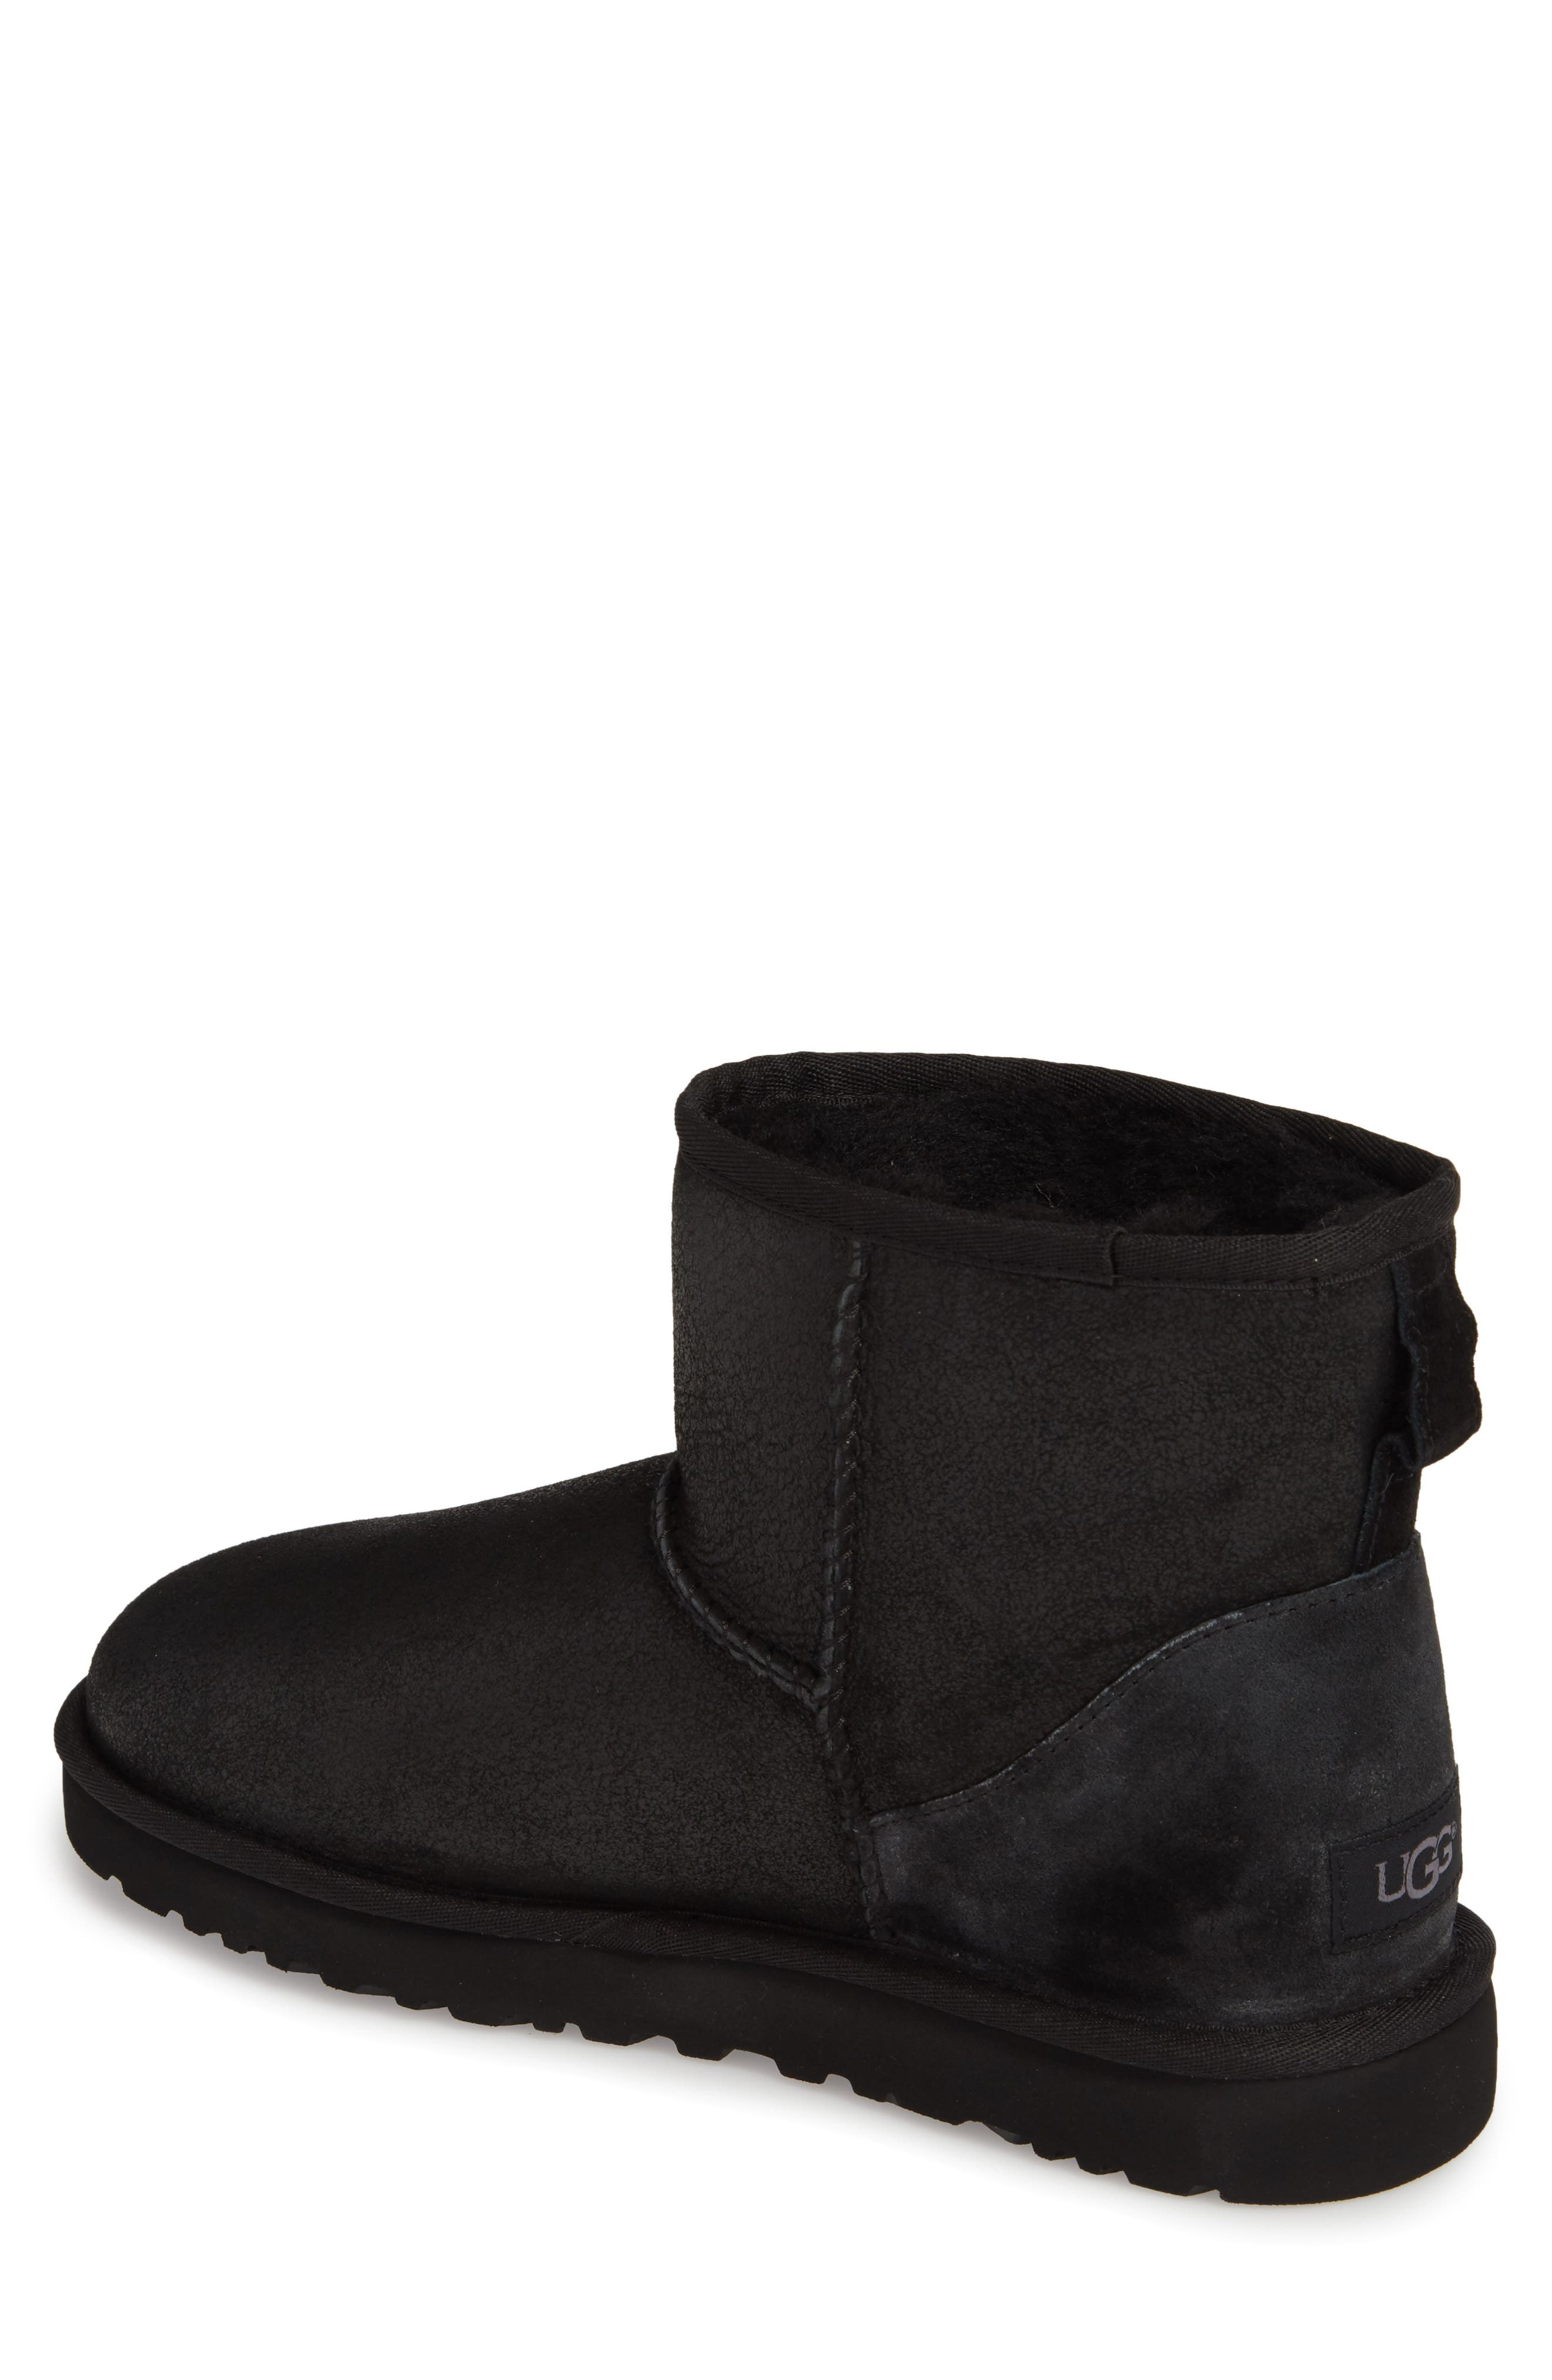 Classic Mini Bomber Boot with Genuine Shearling or UGGpure<sup>™</sup> Lining,                             Alternate thumbnail 2, color,                             BOMBER JACKET BLACK